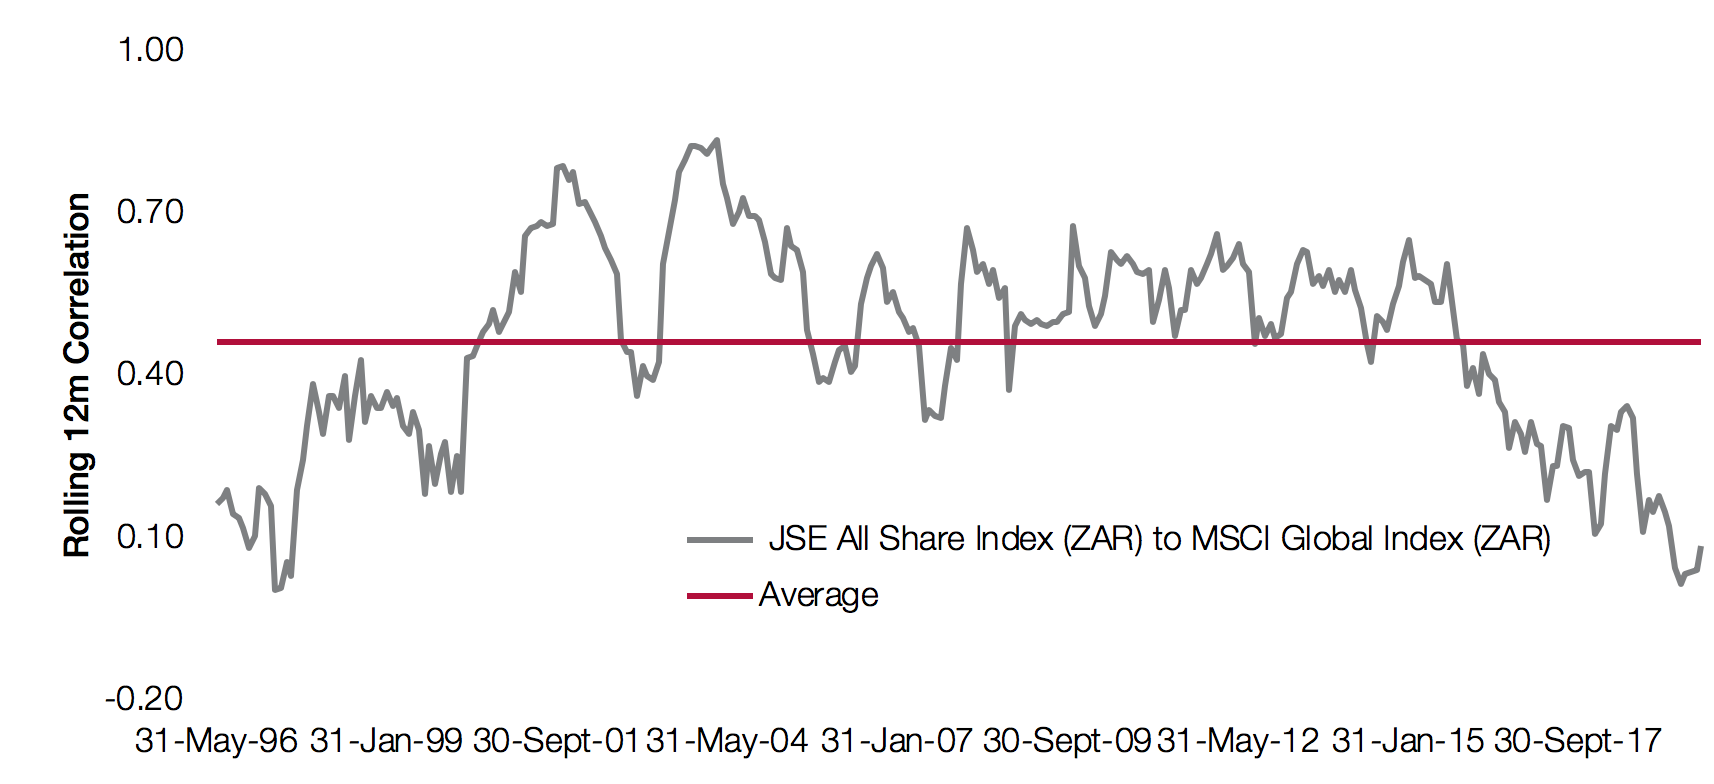 JSE and MSCI estimates